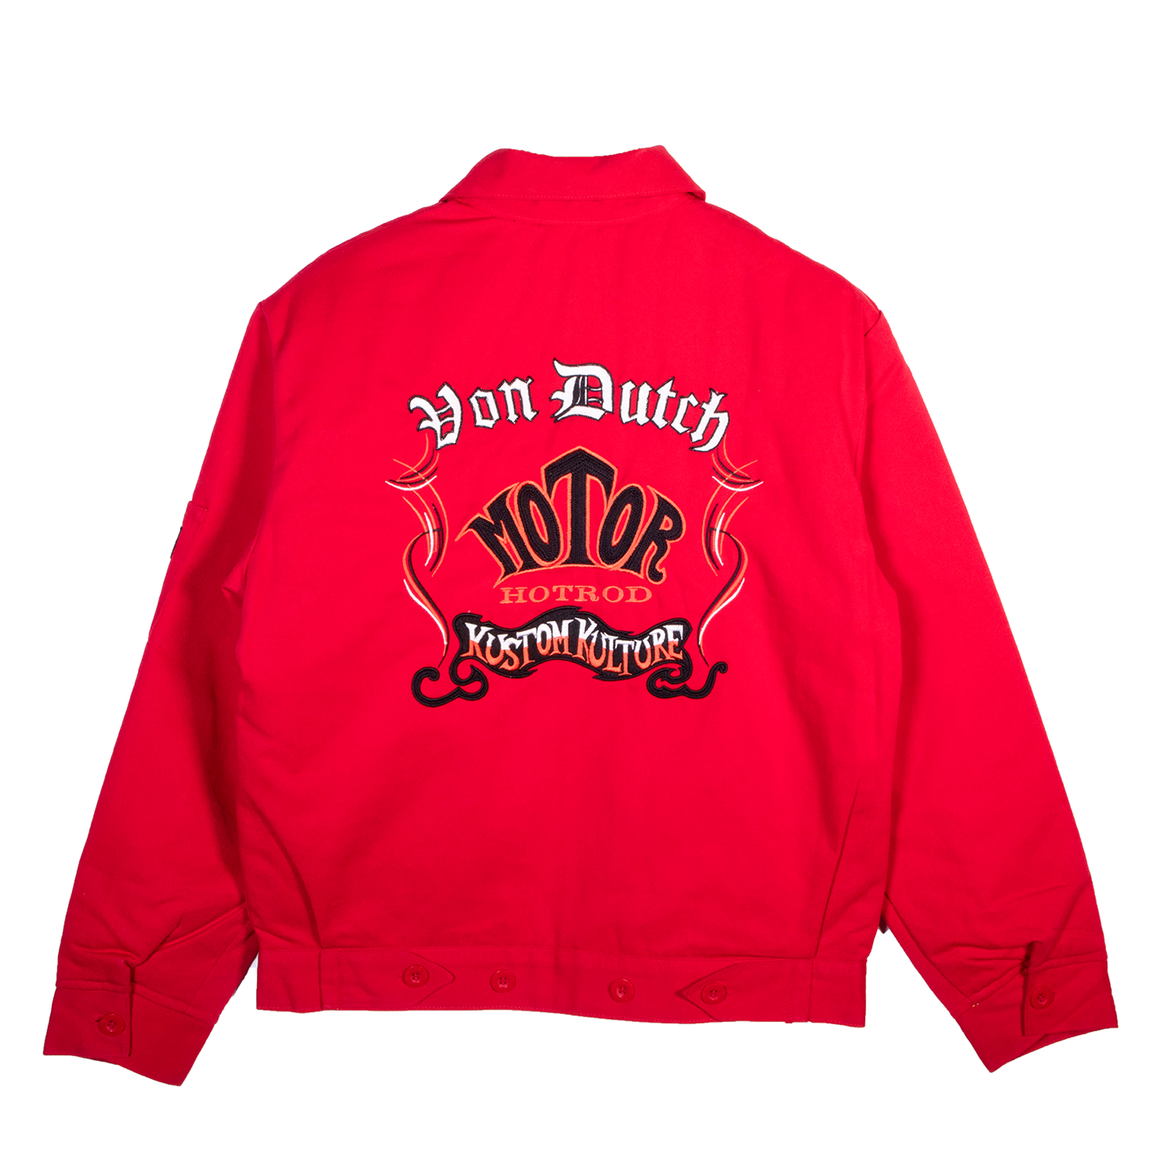 VINTAGE & CLASSIC GAS STATION JACKET RED